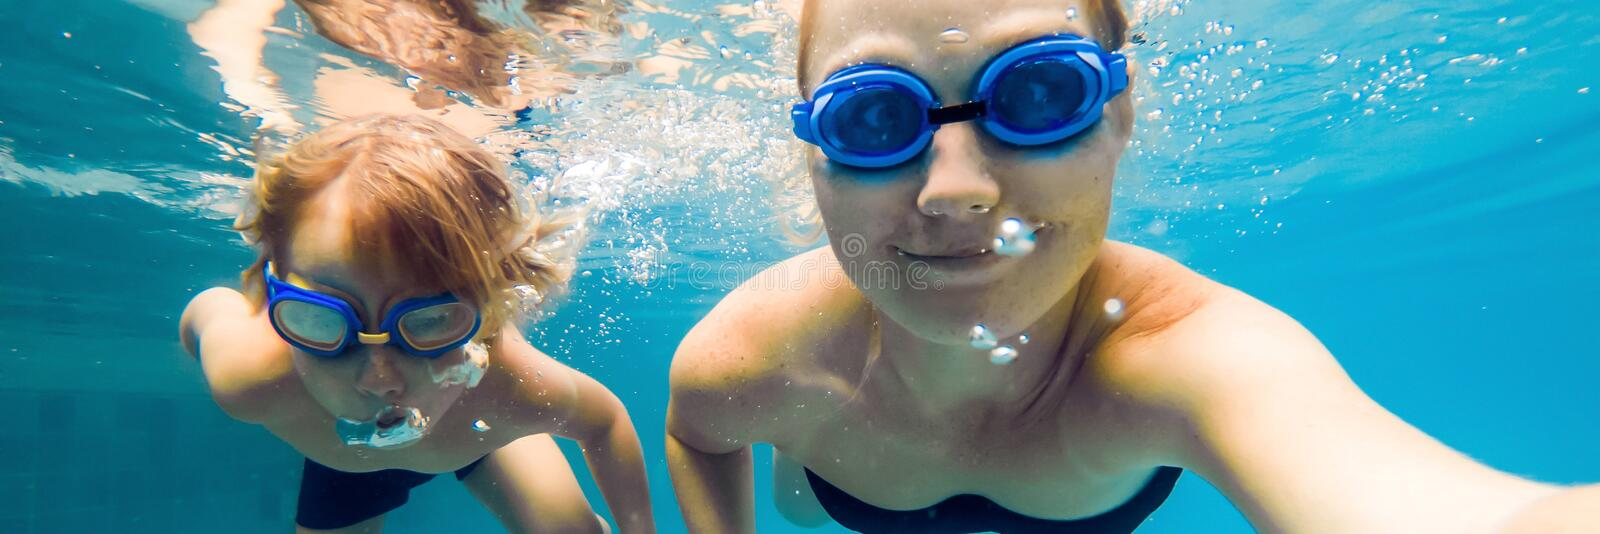 Mom and son in diving glasses swim in the pool under the water BANNER, long format stock photos